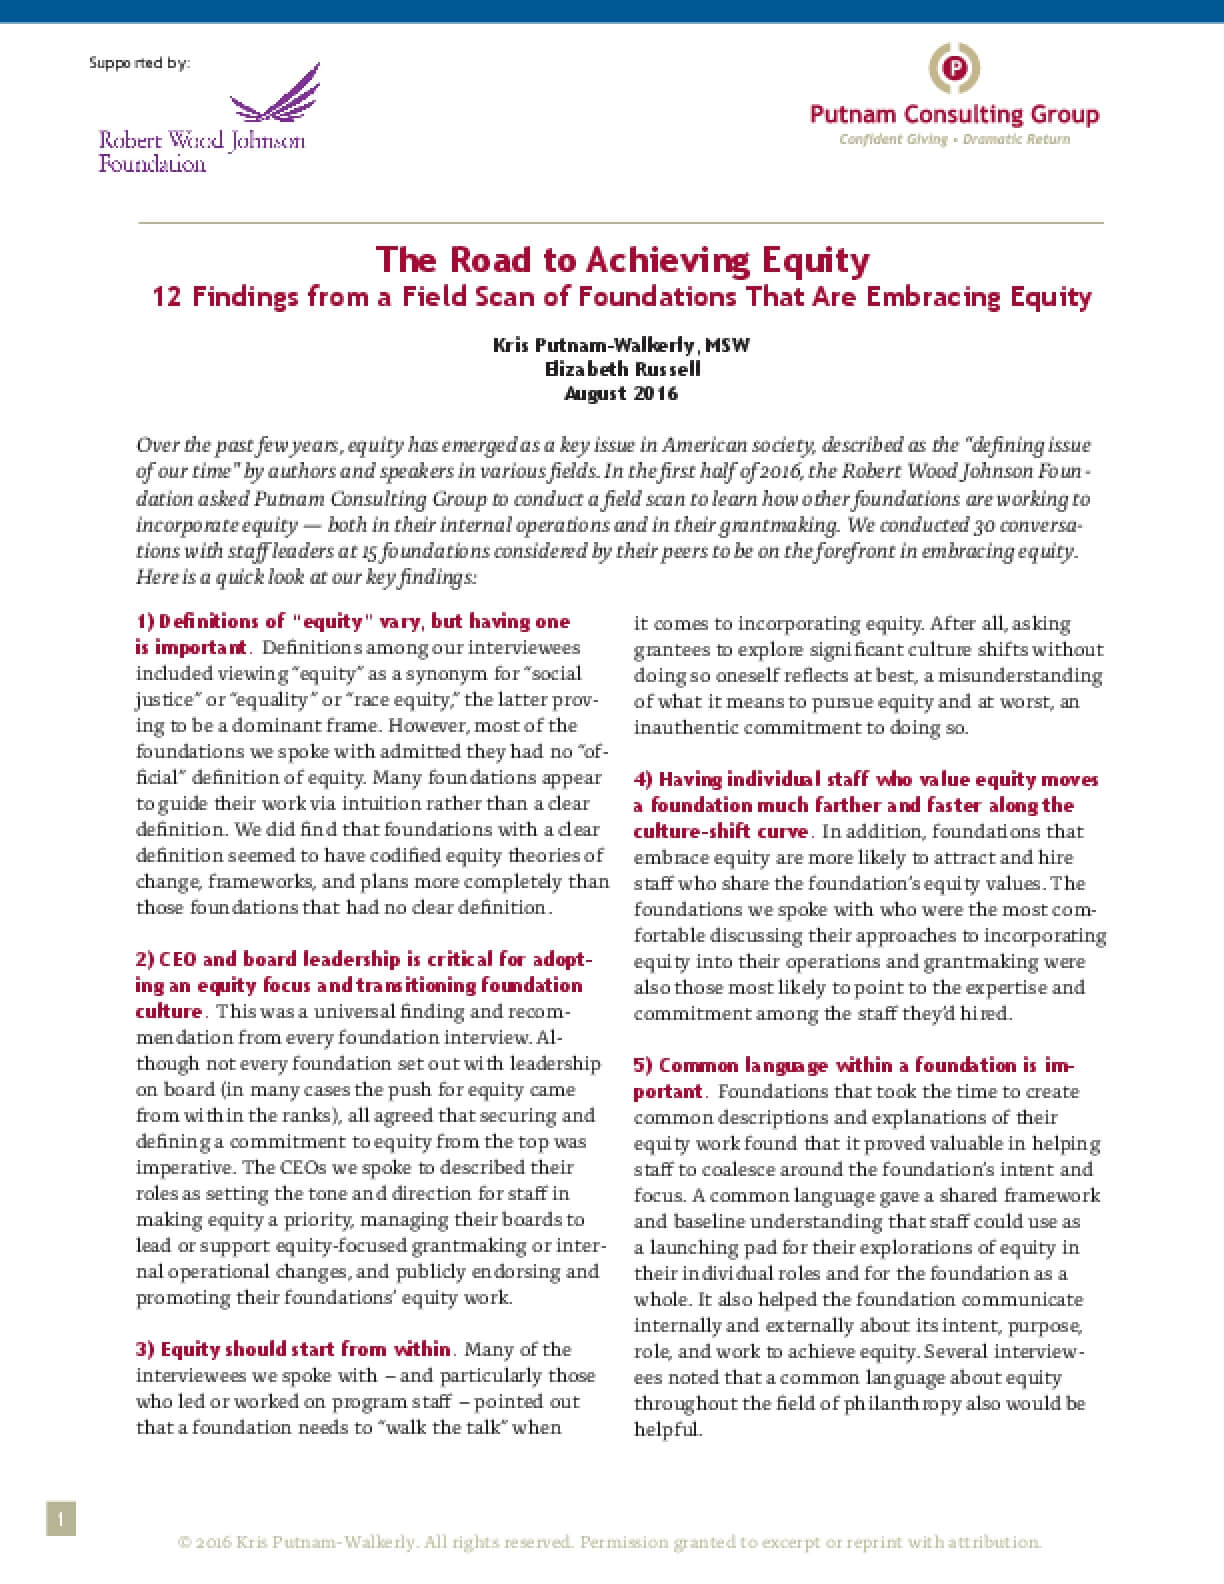 The Road to Achieving Equity 12 Findings from a Field Scan of Foundations That Are Embracing Equity